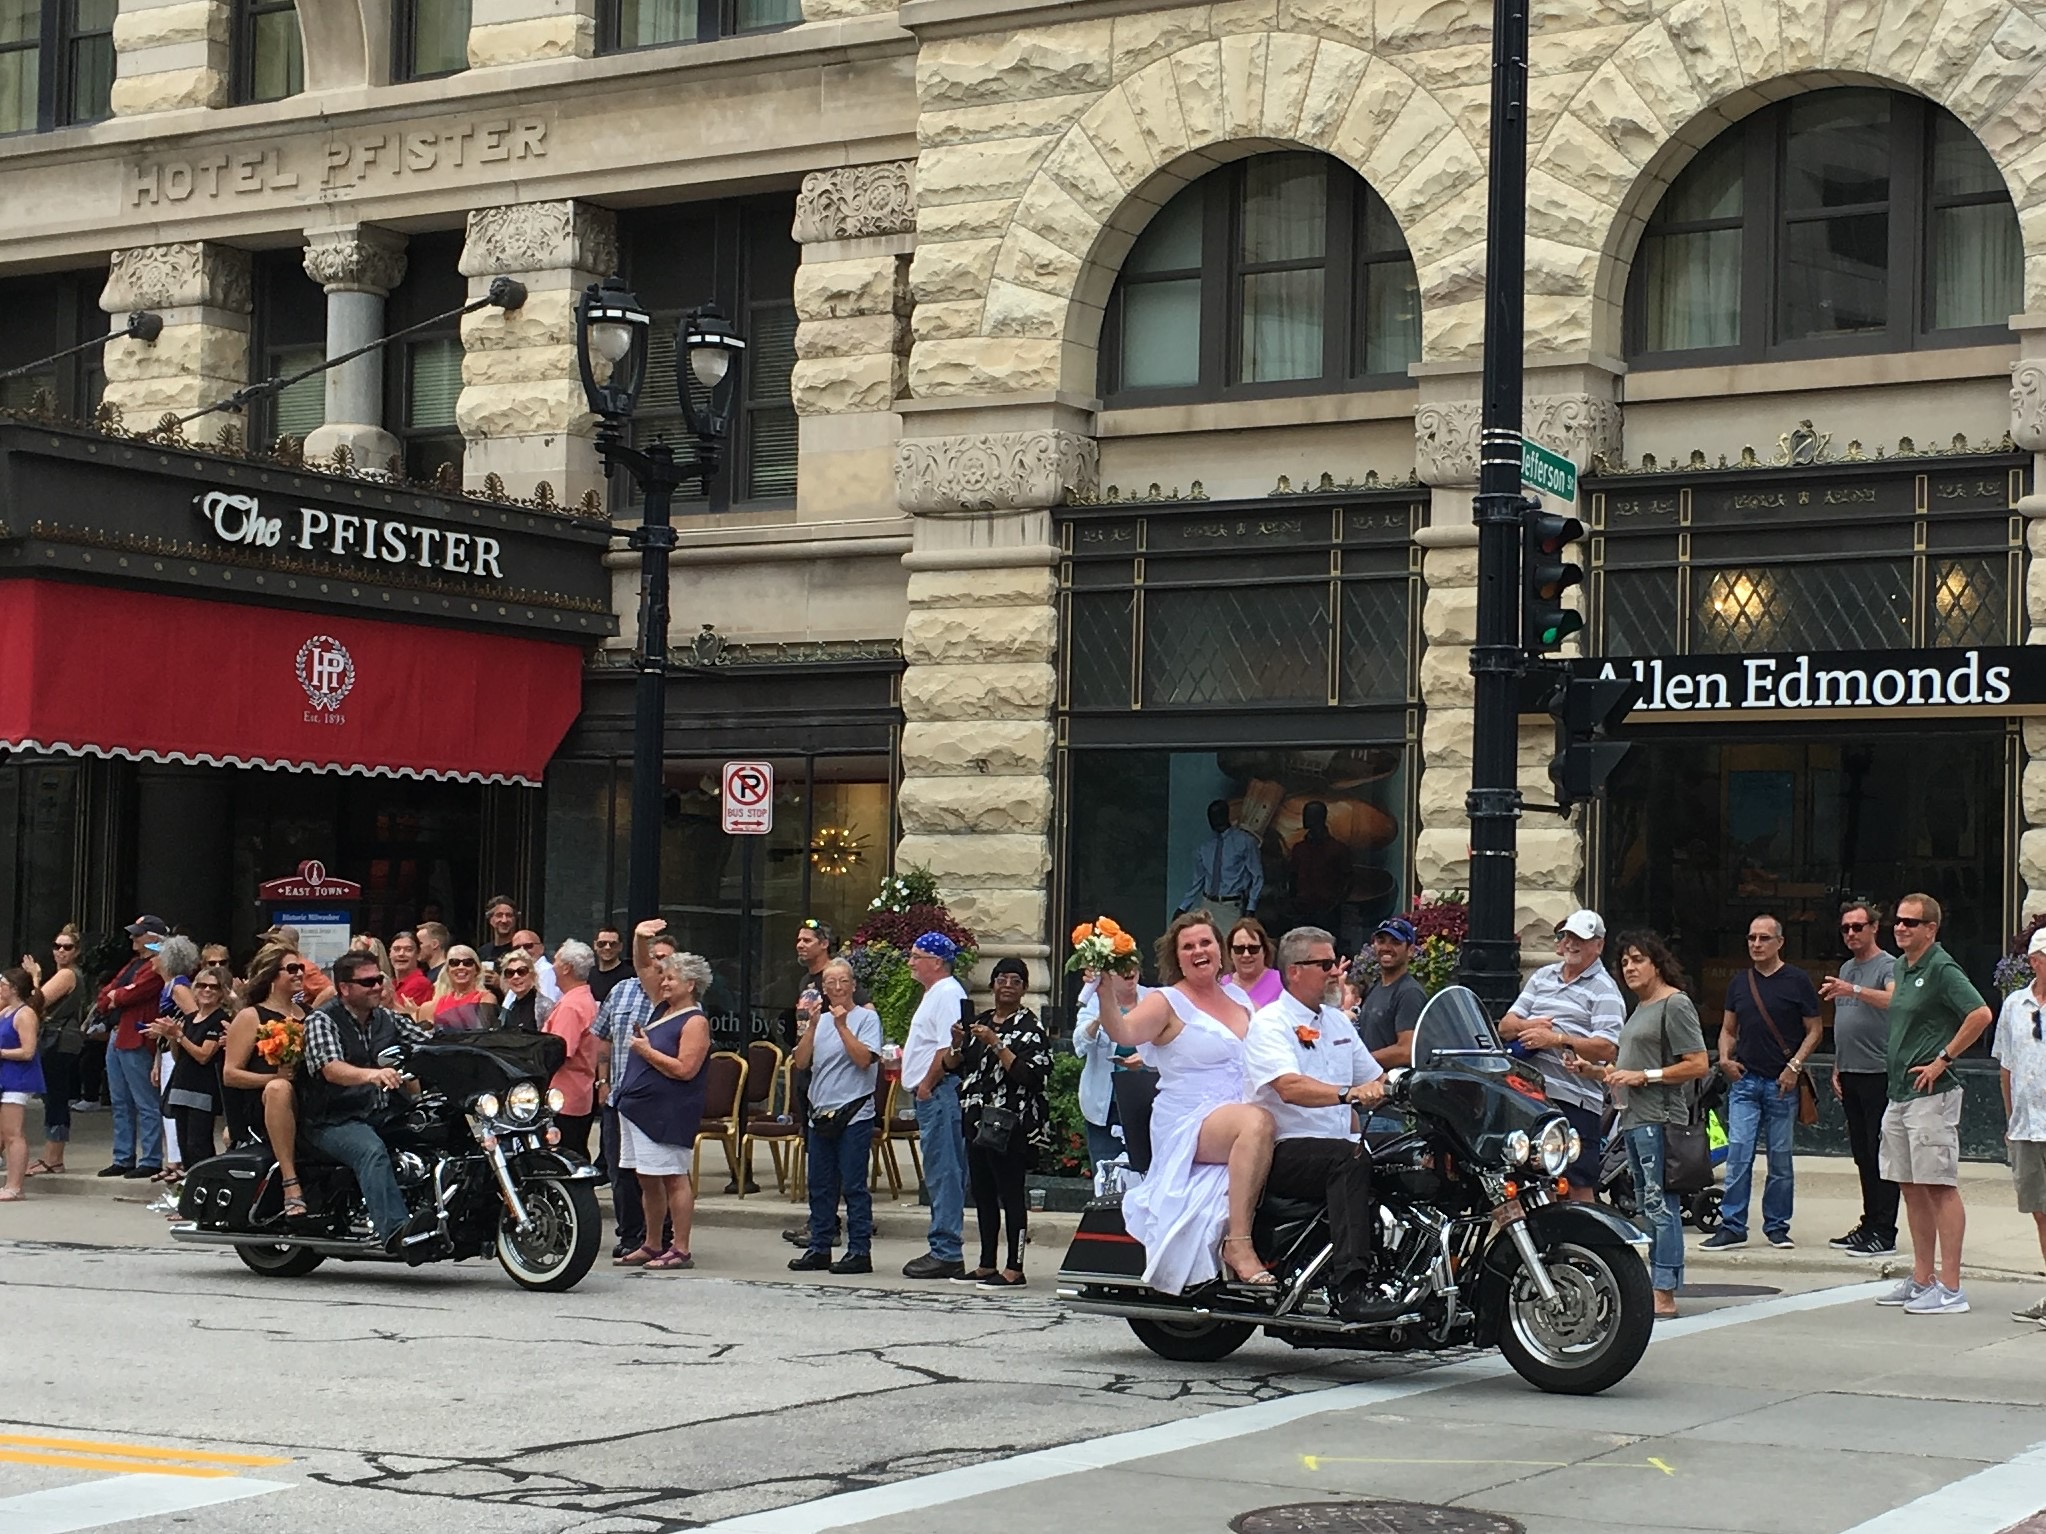 Harley Davidson Parade: Just When We Need It, Harley-Davidson Throws A Motorcycle